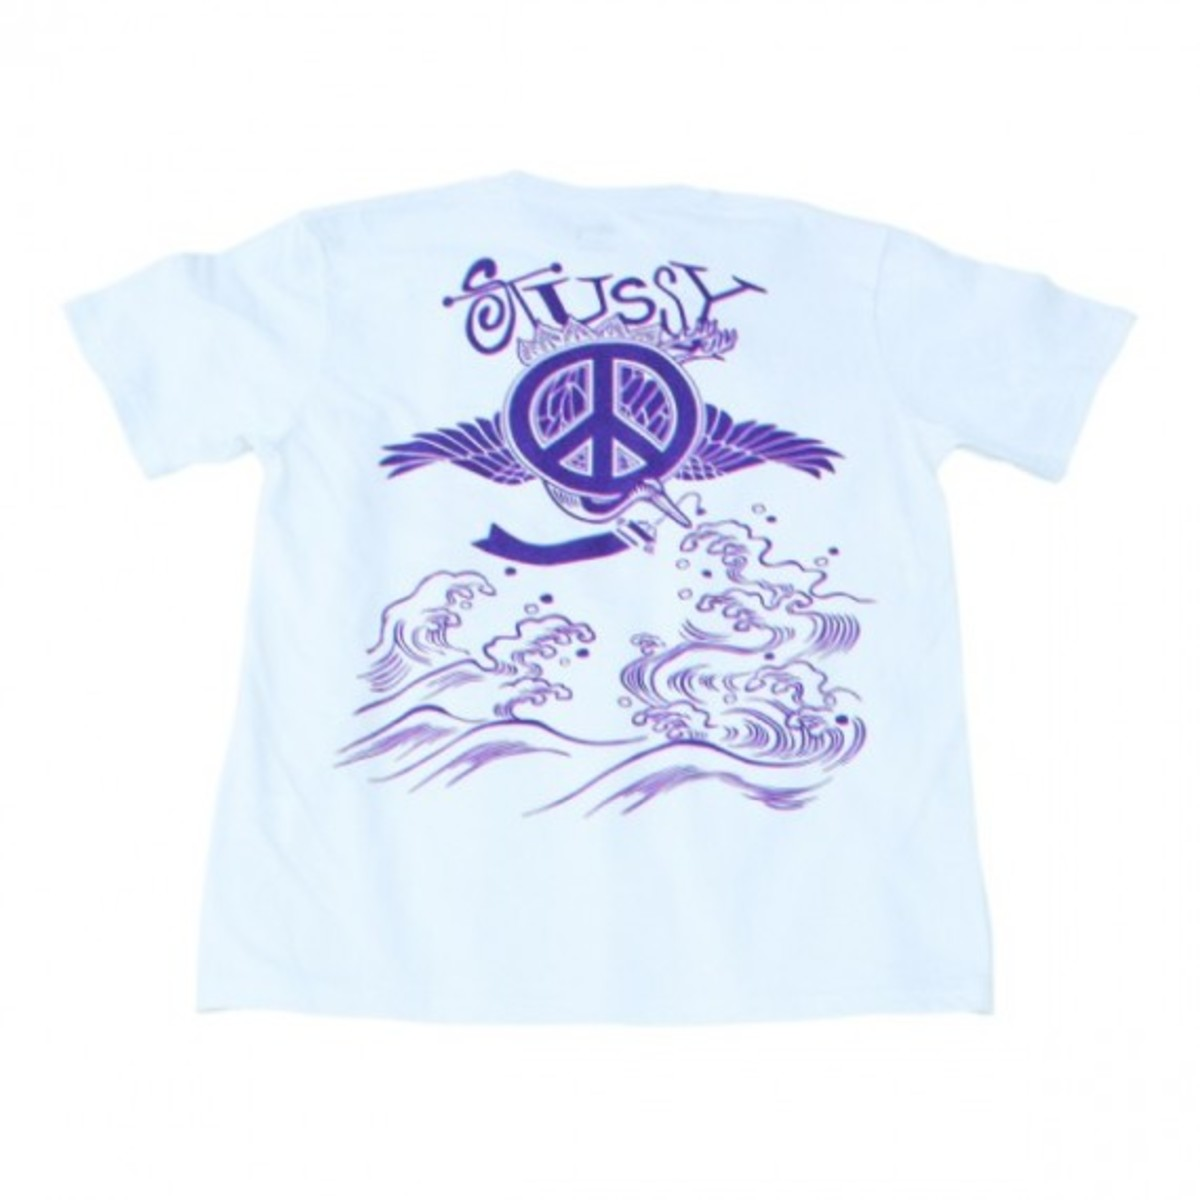 eyescream-stussy-wonder-worker-guerrilla-band-t-shirt-02